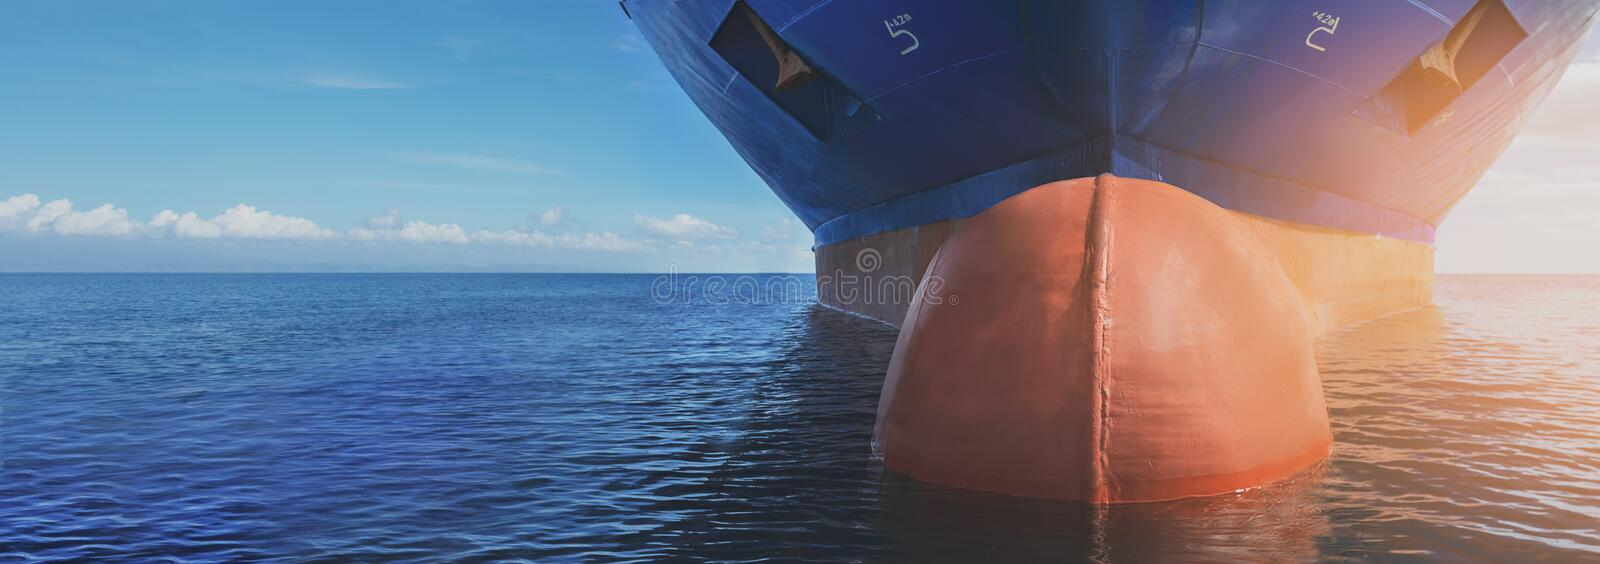 Close up of large blue merchant crago ship in the middle of the ocean underway. Performing cargo export and import operations. With sun rays, horizon line and royalty free stock images